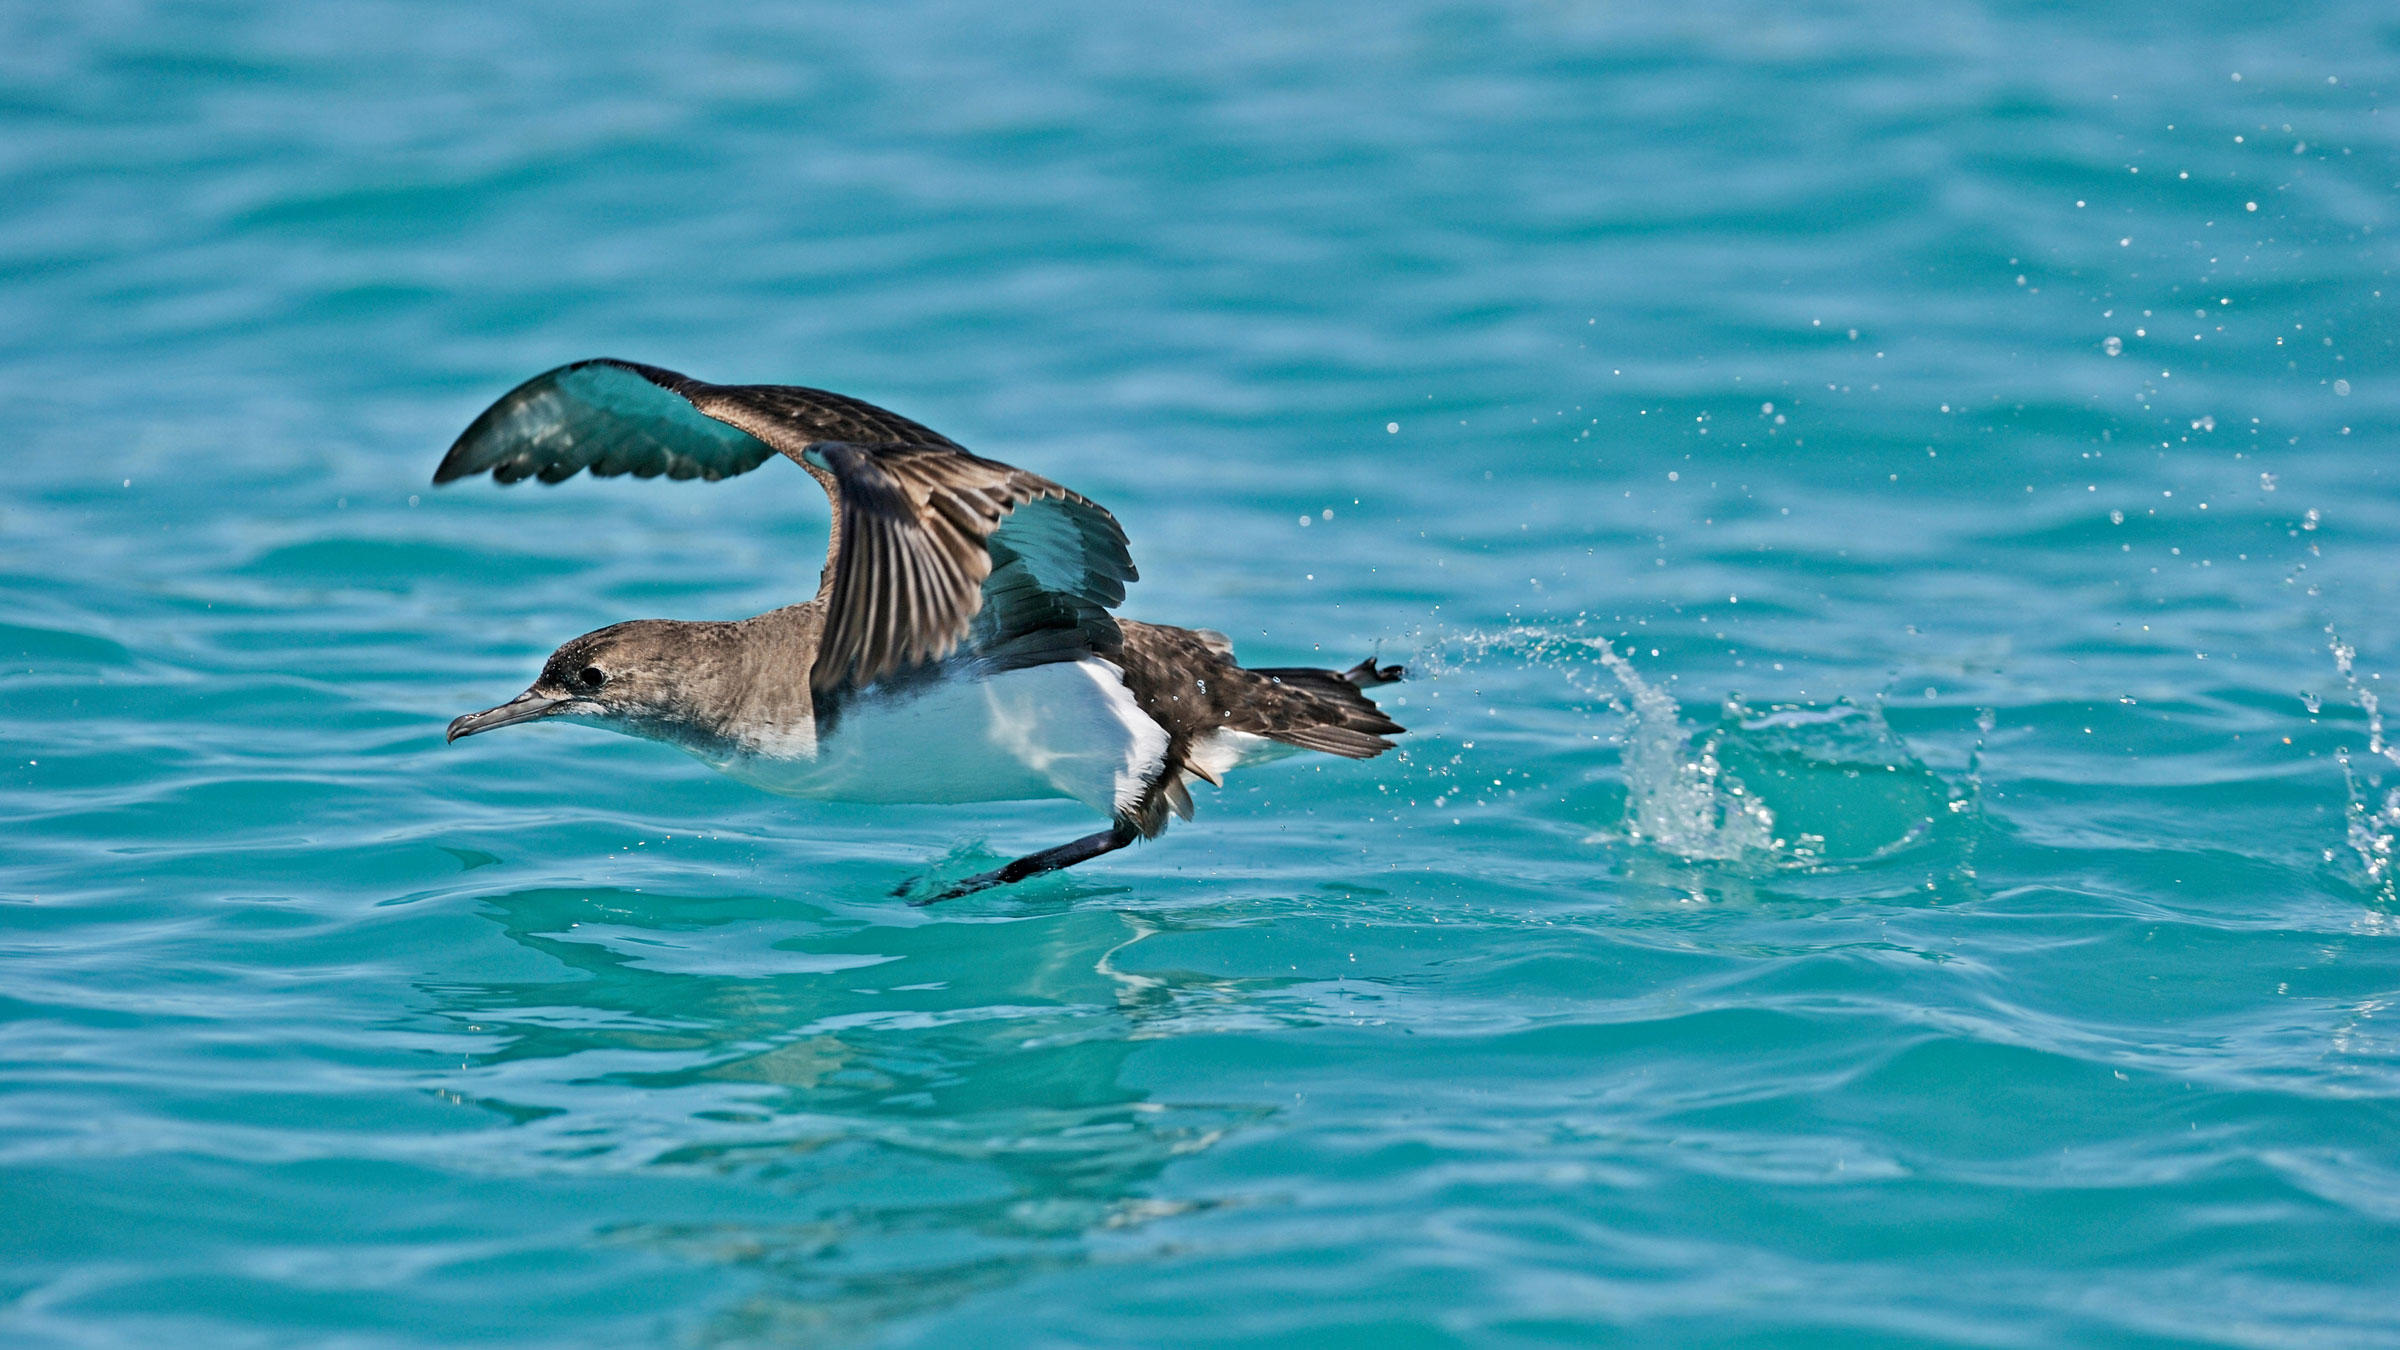 A Hutton's Shearwater takes off near Kaikoura, New Zealand, where a 7.8-magnitude earthquake triggered landslides last week. David Tipling Photo Library/Alamy